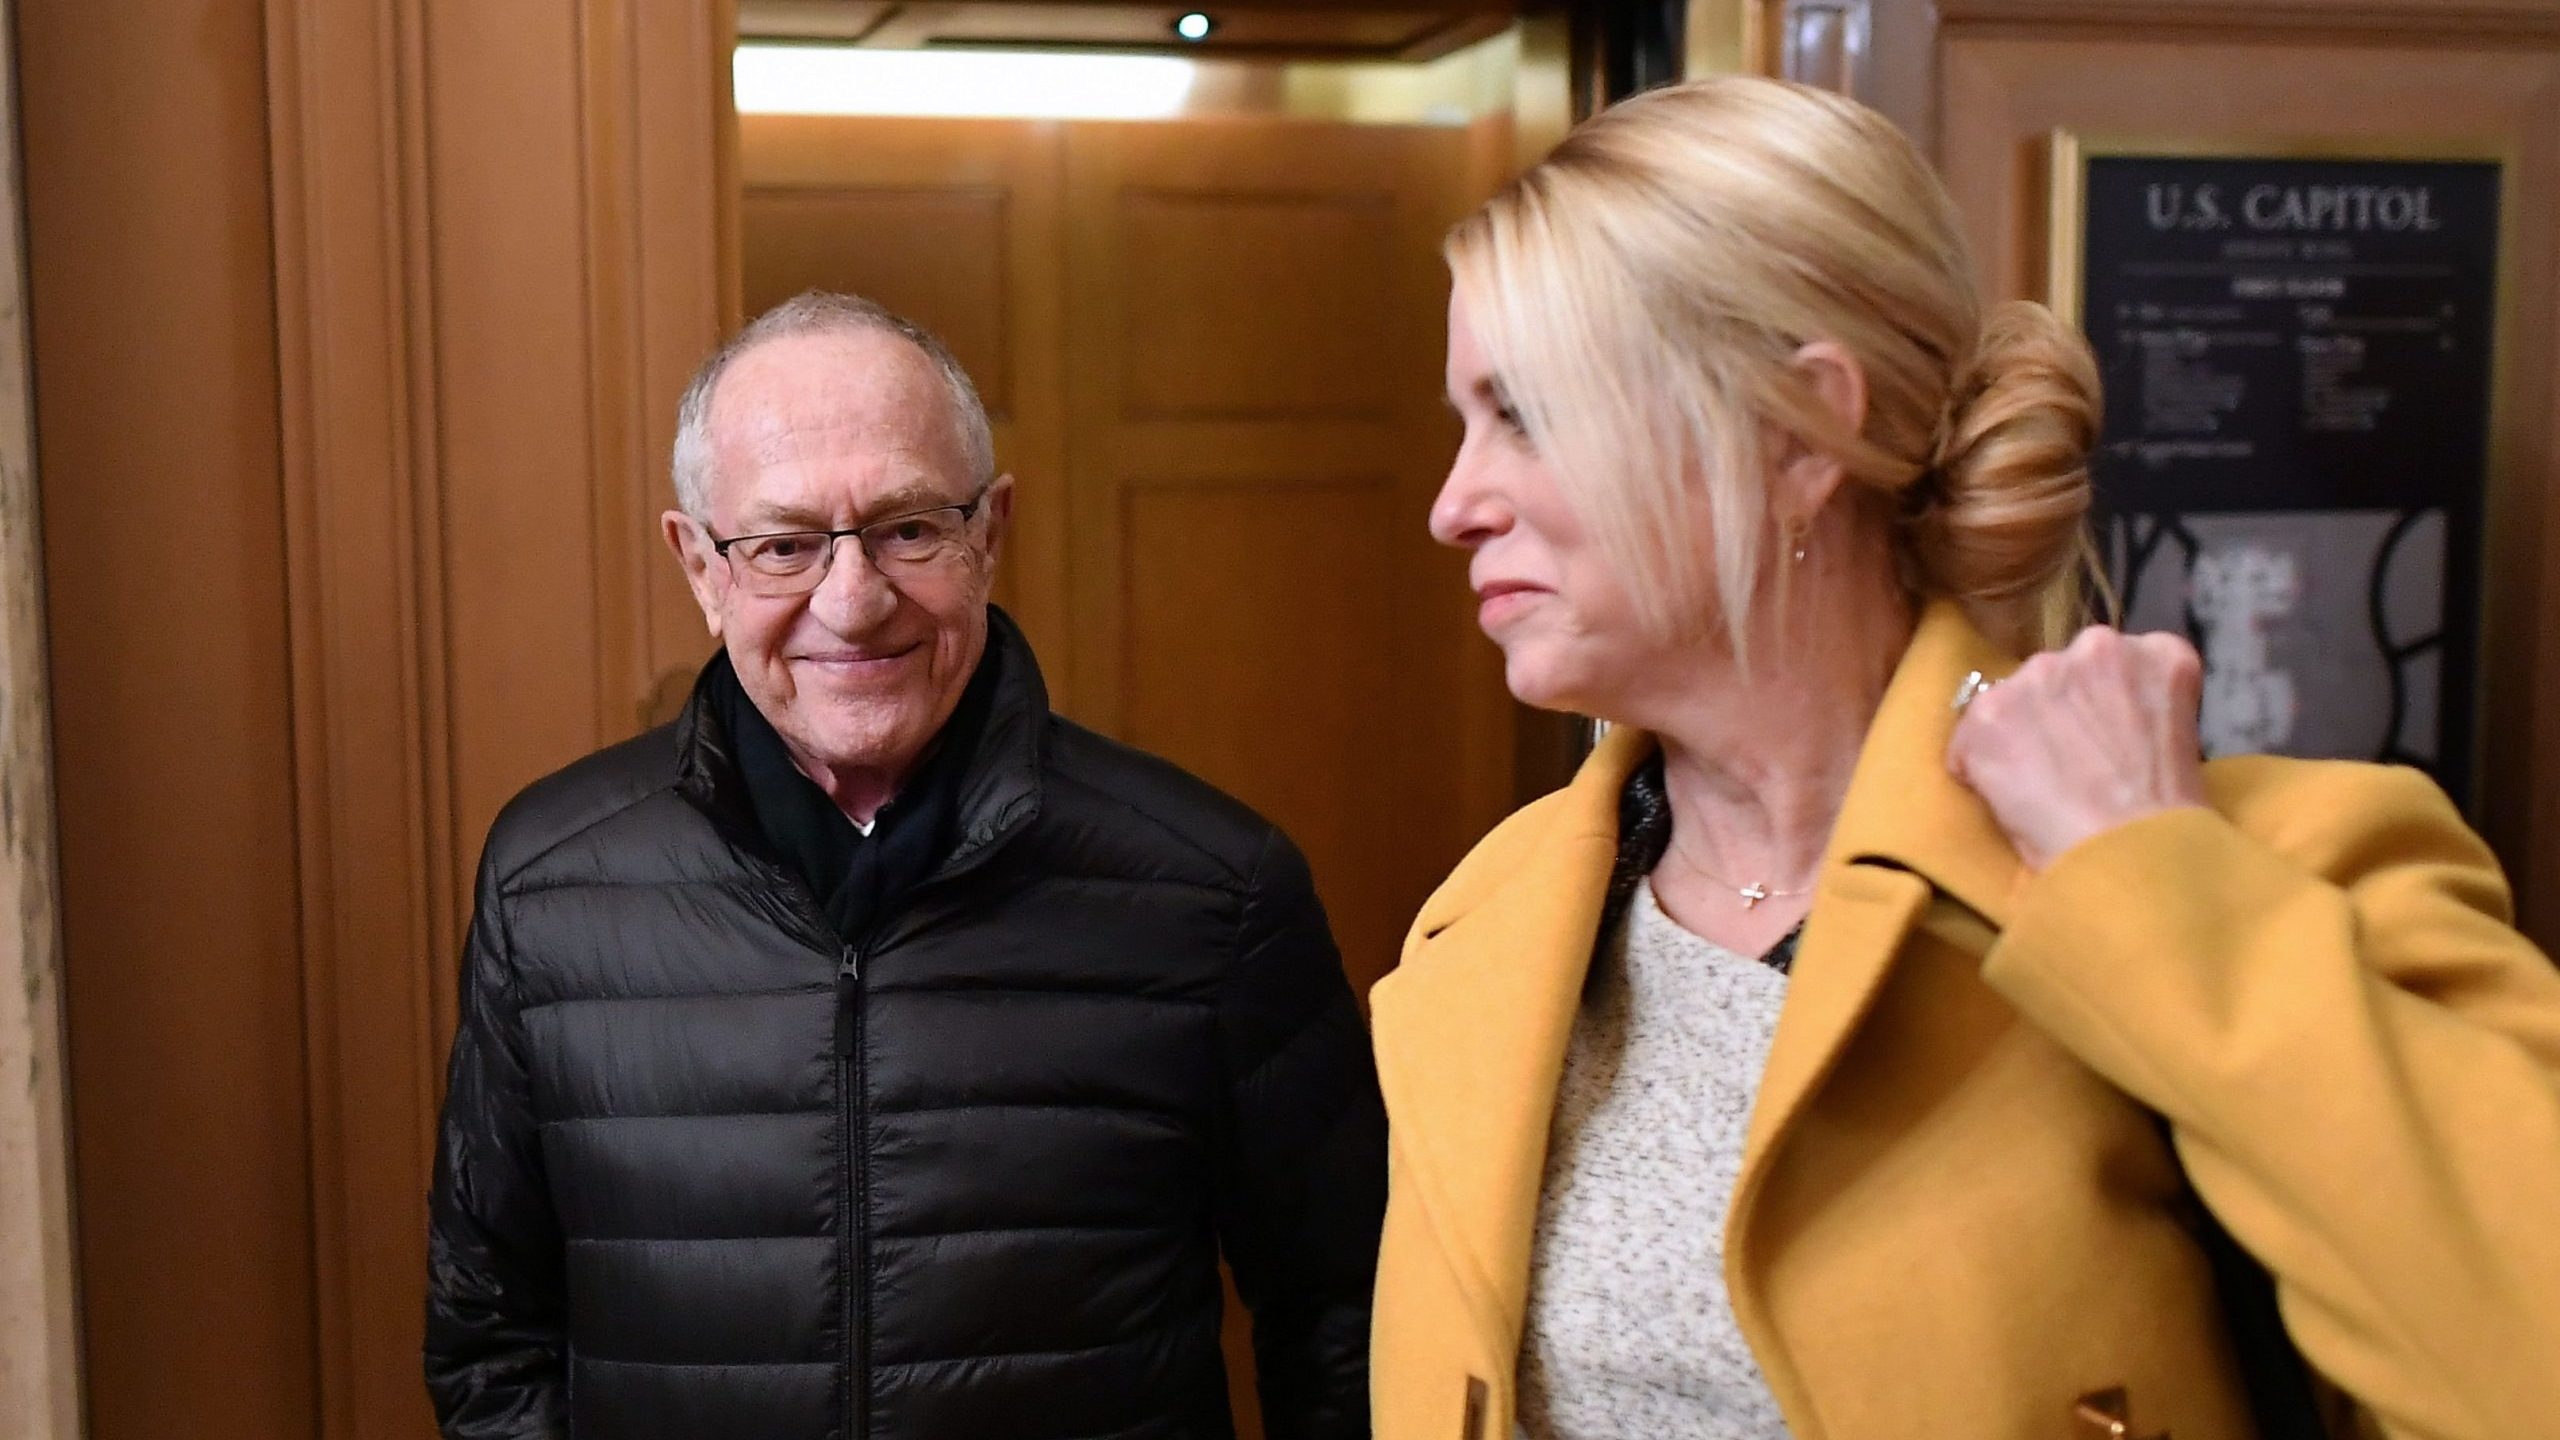 US President Donald Trump lawyers Alan Dershowitz (L) and Pam Bondi depart the Senate chamber after the impeachment trial of US President Donald Trump at the US Capitol in Washington, DC on January 27, 2020. (Credit: MANDEL NGAN/AFP via Getty Images)